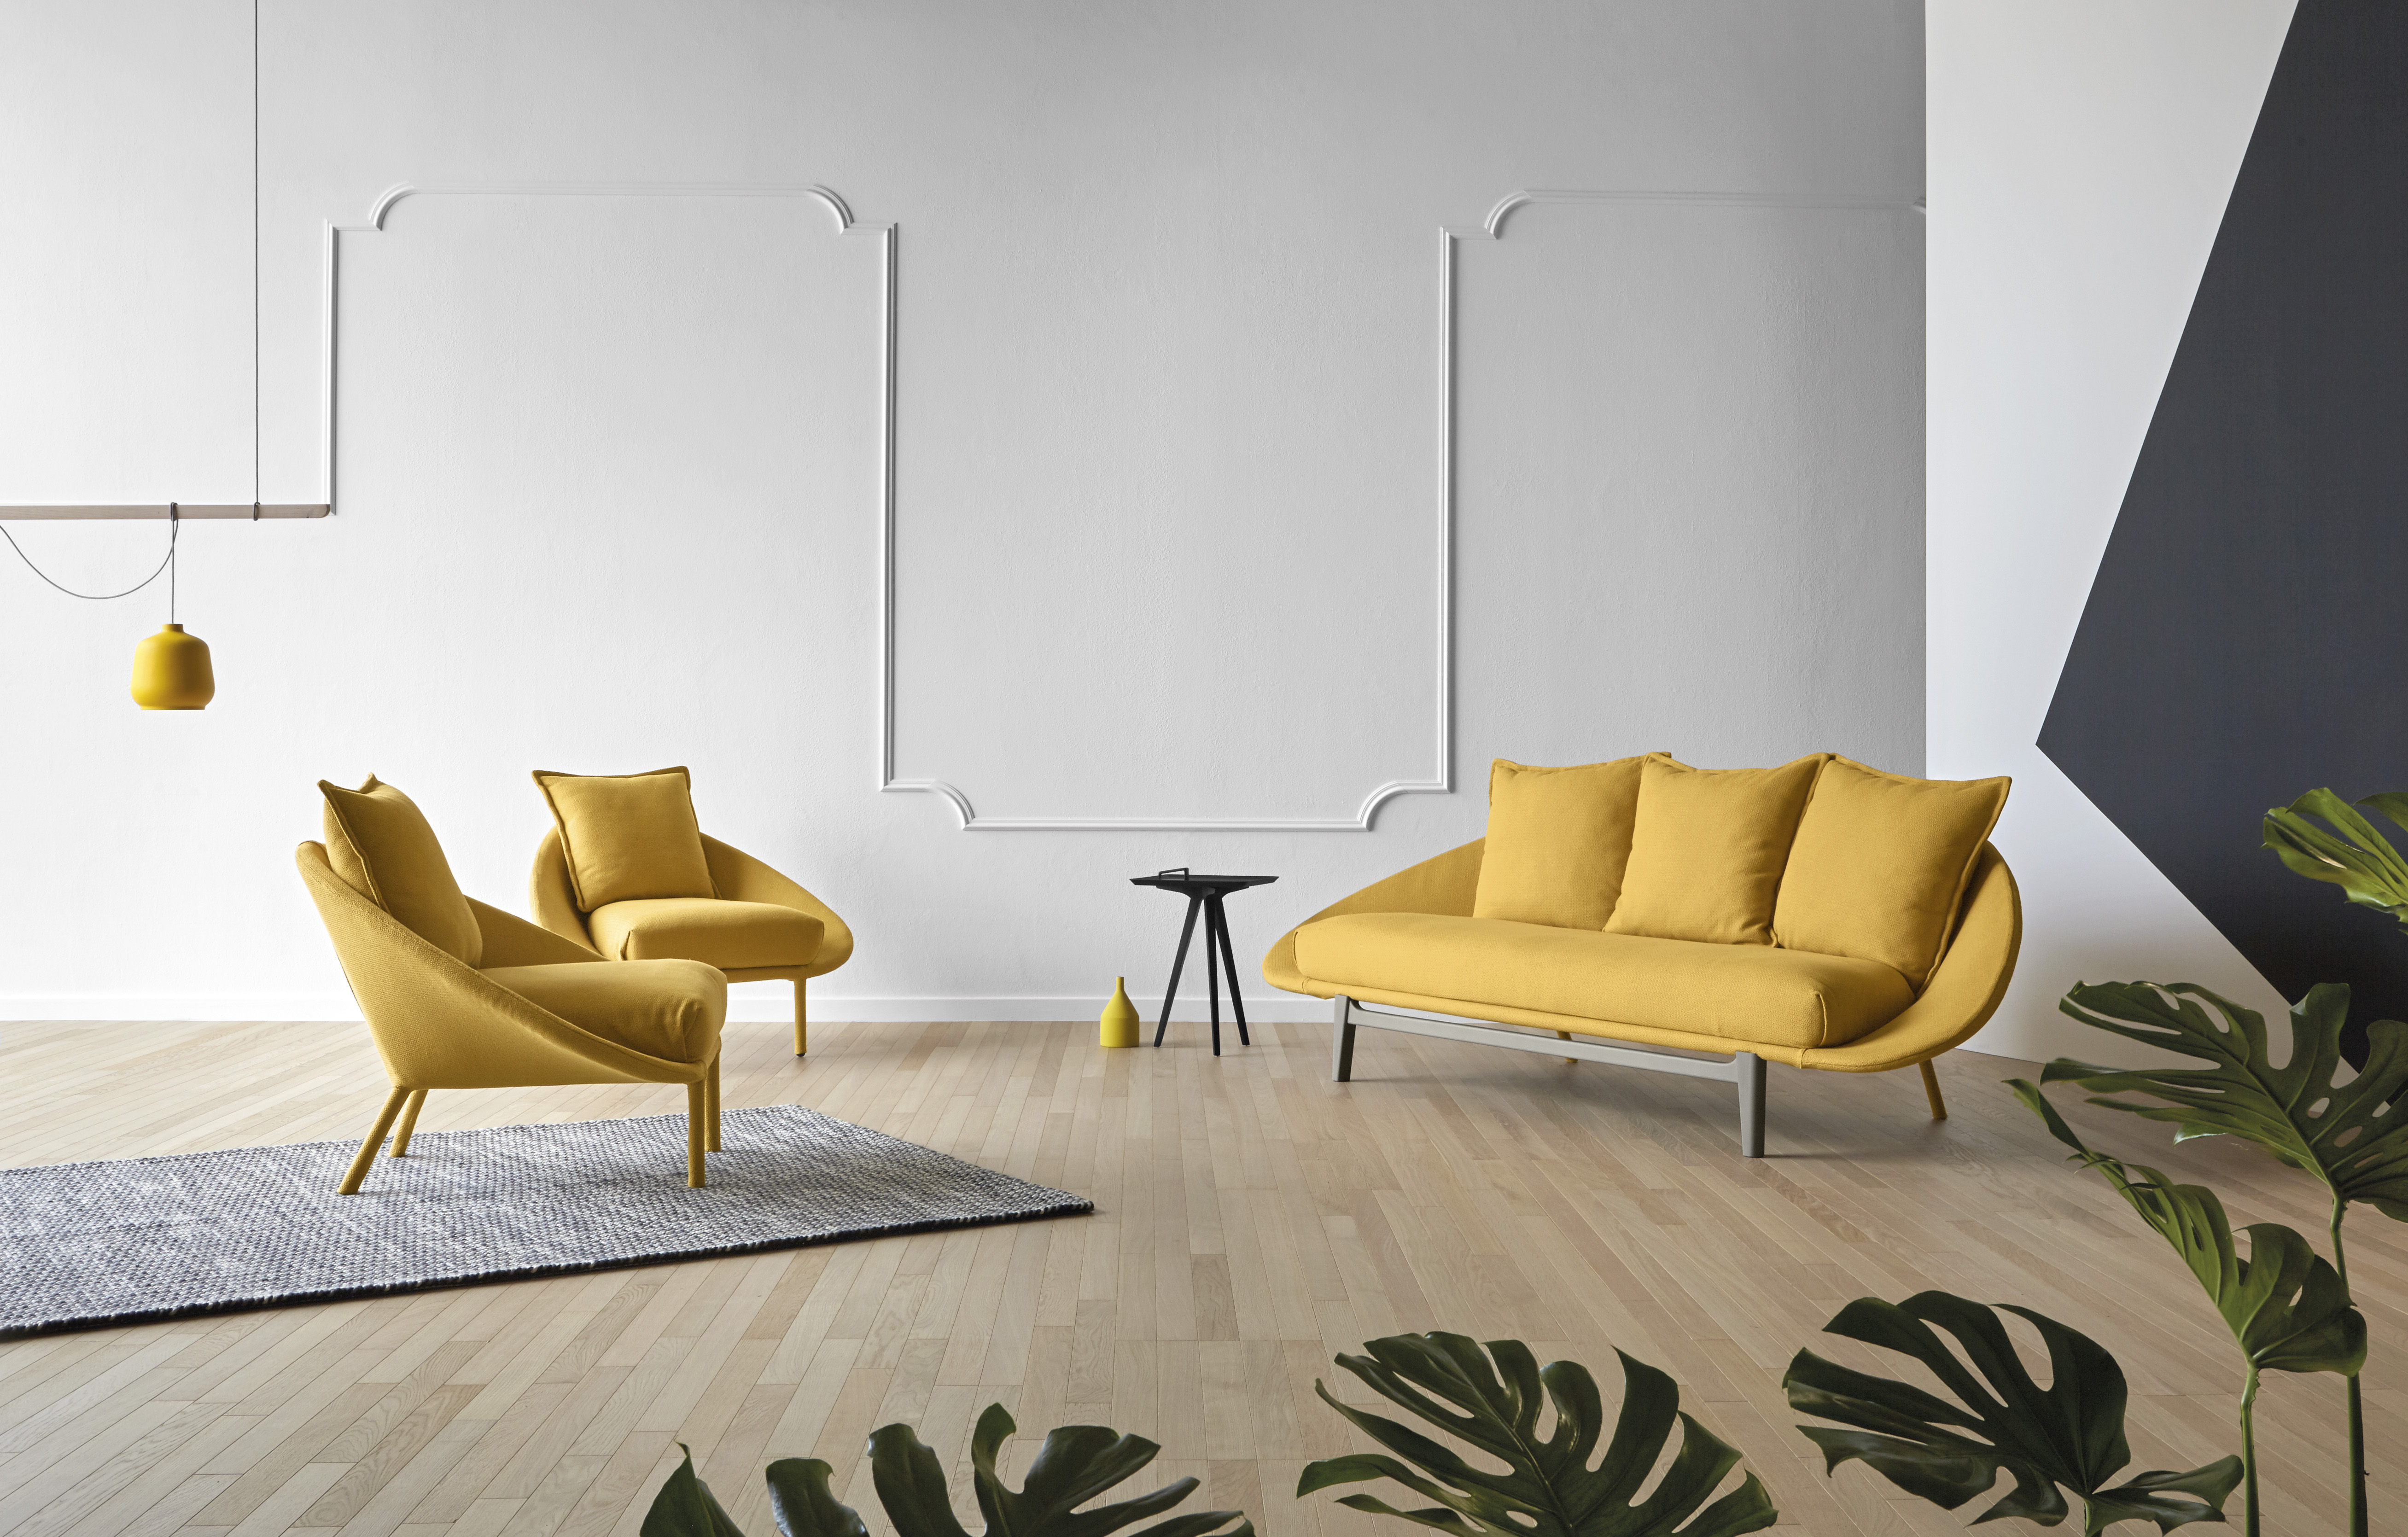 Lem Sofa - Lem is a soft and sinuous sofa with a completely upholstered structure that ascends with sweet, little feet. The soft cushions of the seat and the back lean on the fabric shell, ensuring maximum comfort. The Lem series includes five variants, two or three-seater sofa, sectional sofa, armchair, and ottoman.  Kit 1 and Kit 2 back cushion are also available to purchase please enquire for more details.   A range of upholstery fabrics, materials and colours are available in a number of combinations. Prices may vary. Please enquire for full details.  | Matter of Stuff